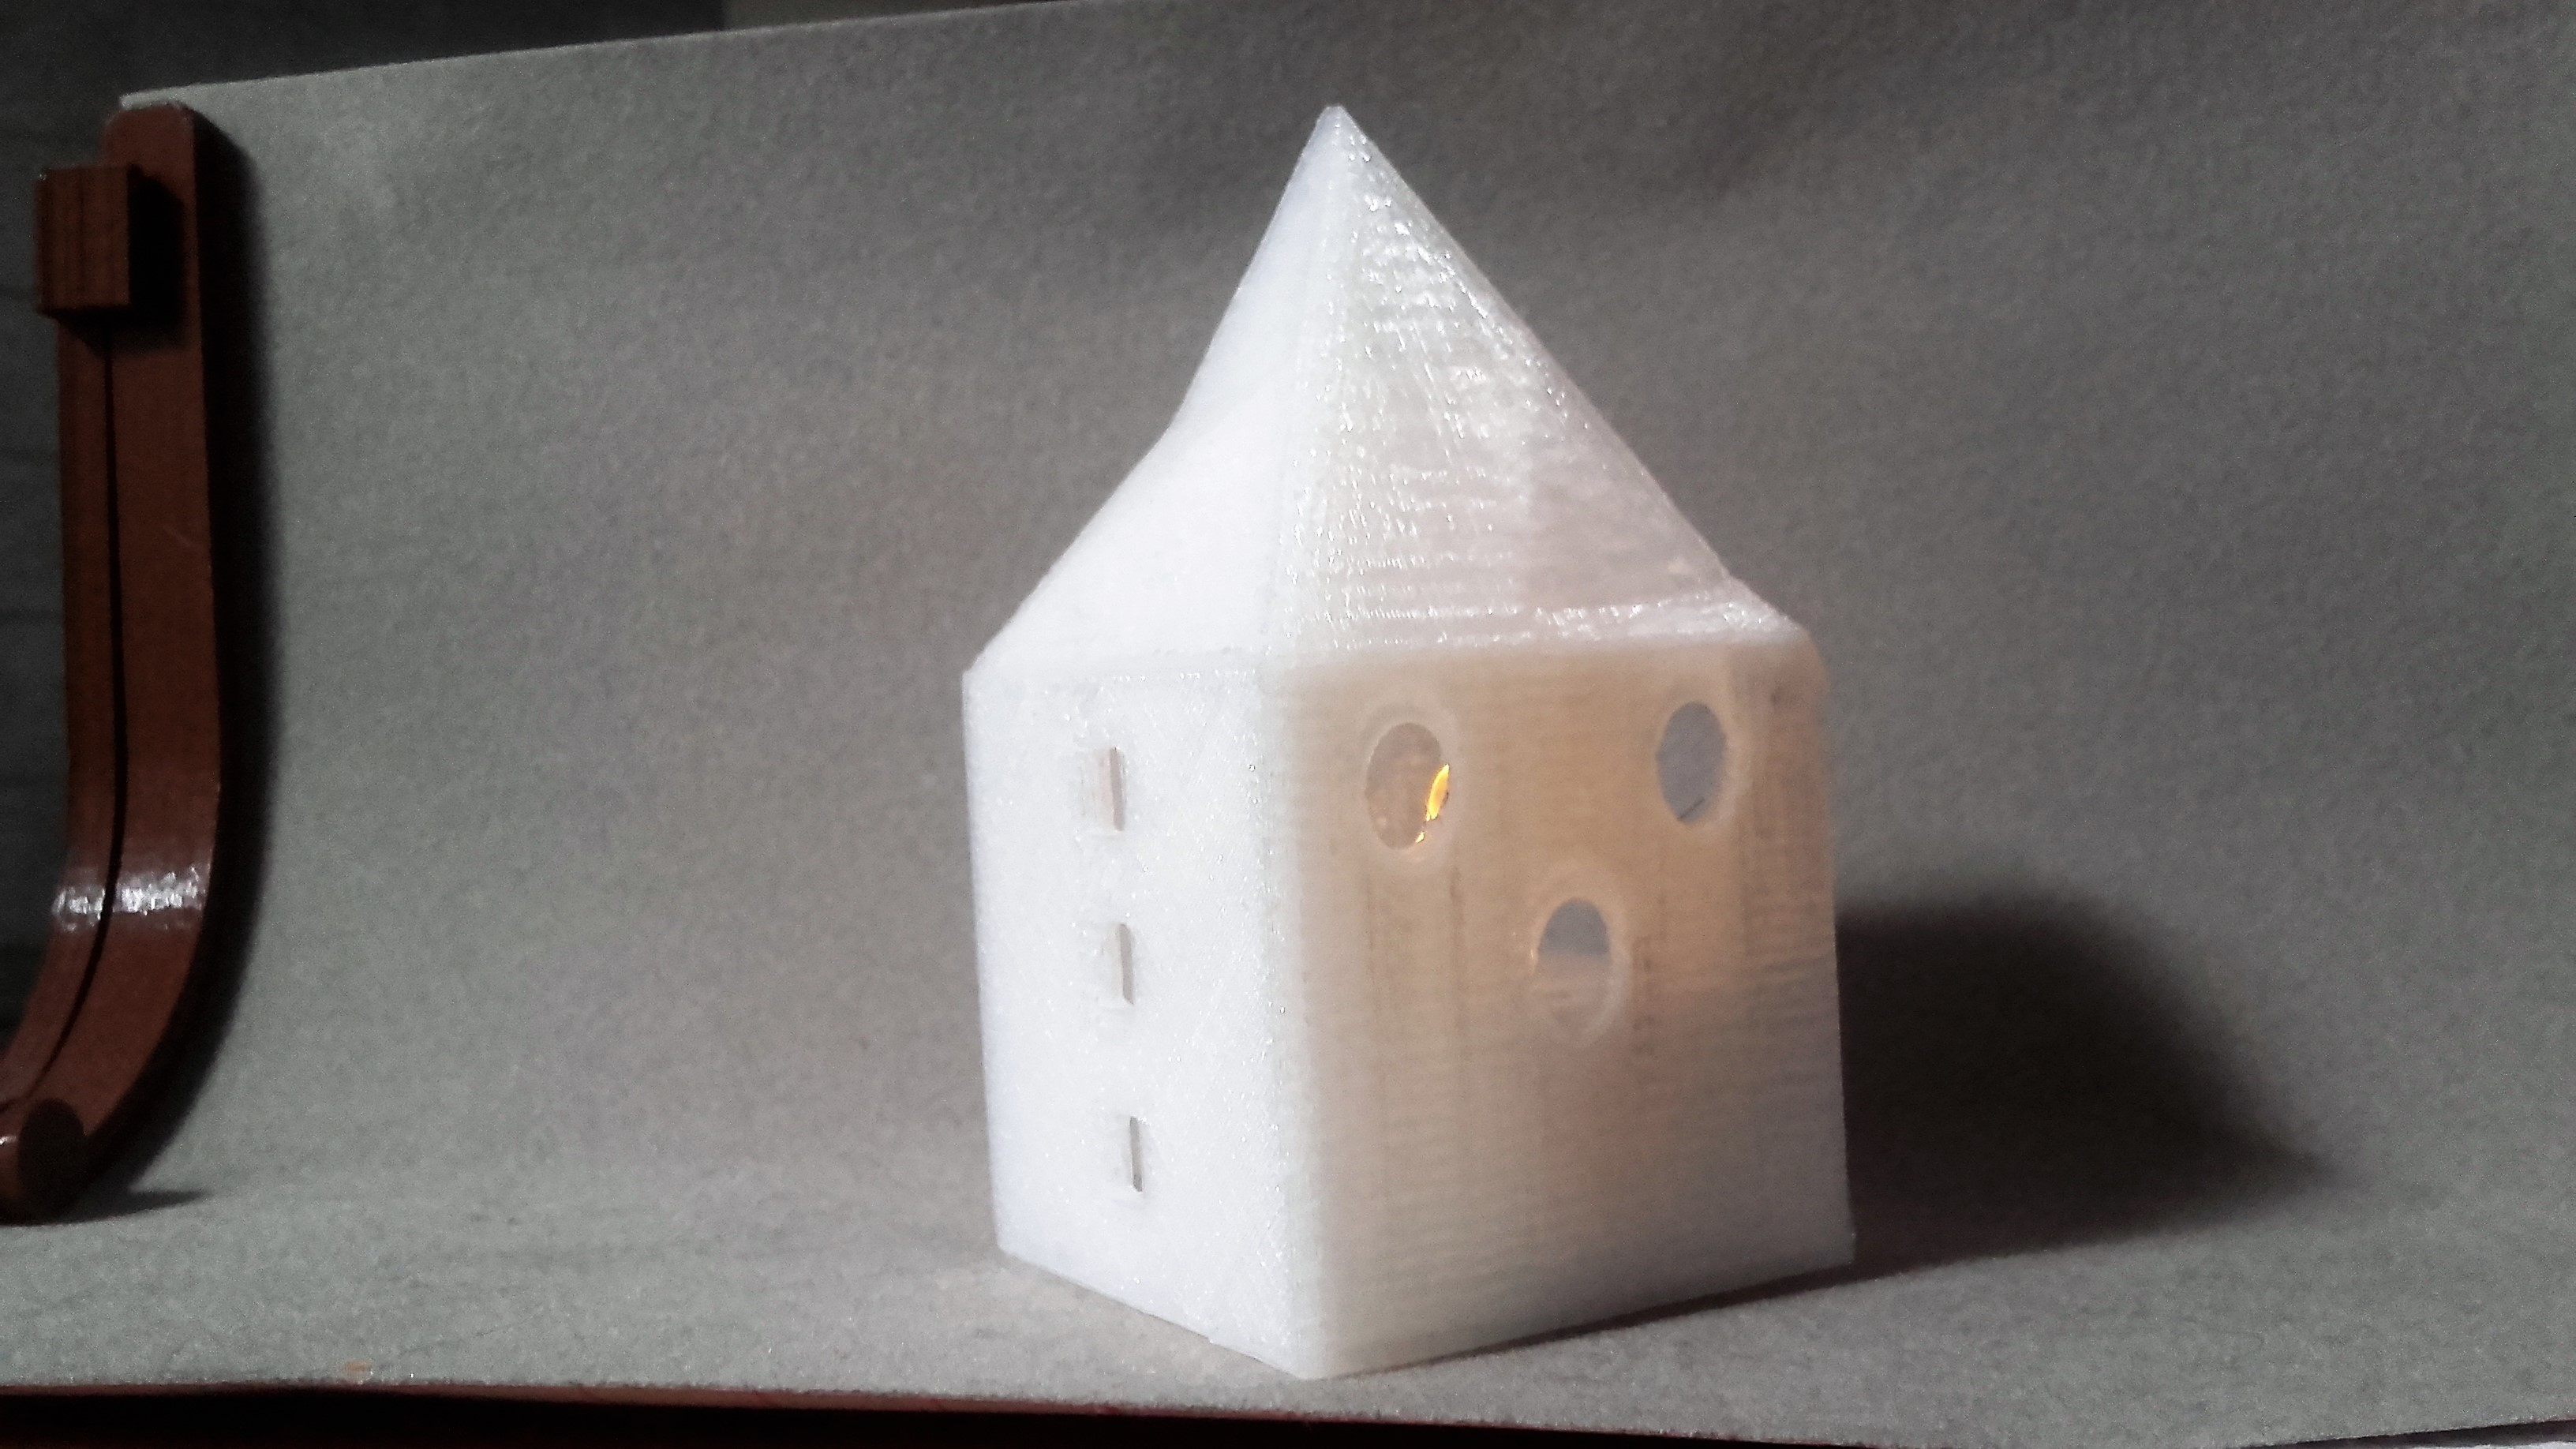 20170608_180149.jpg Download STL file Small illuminated house • 3D printable template, catf3d